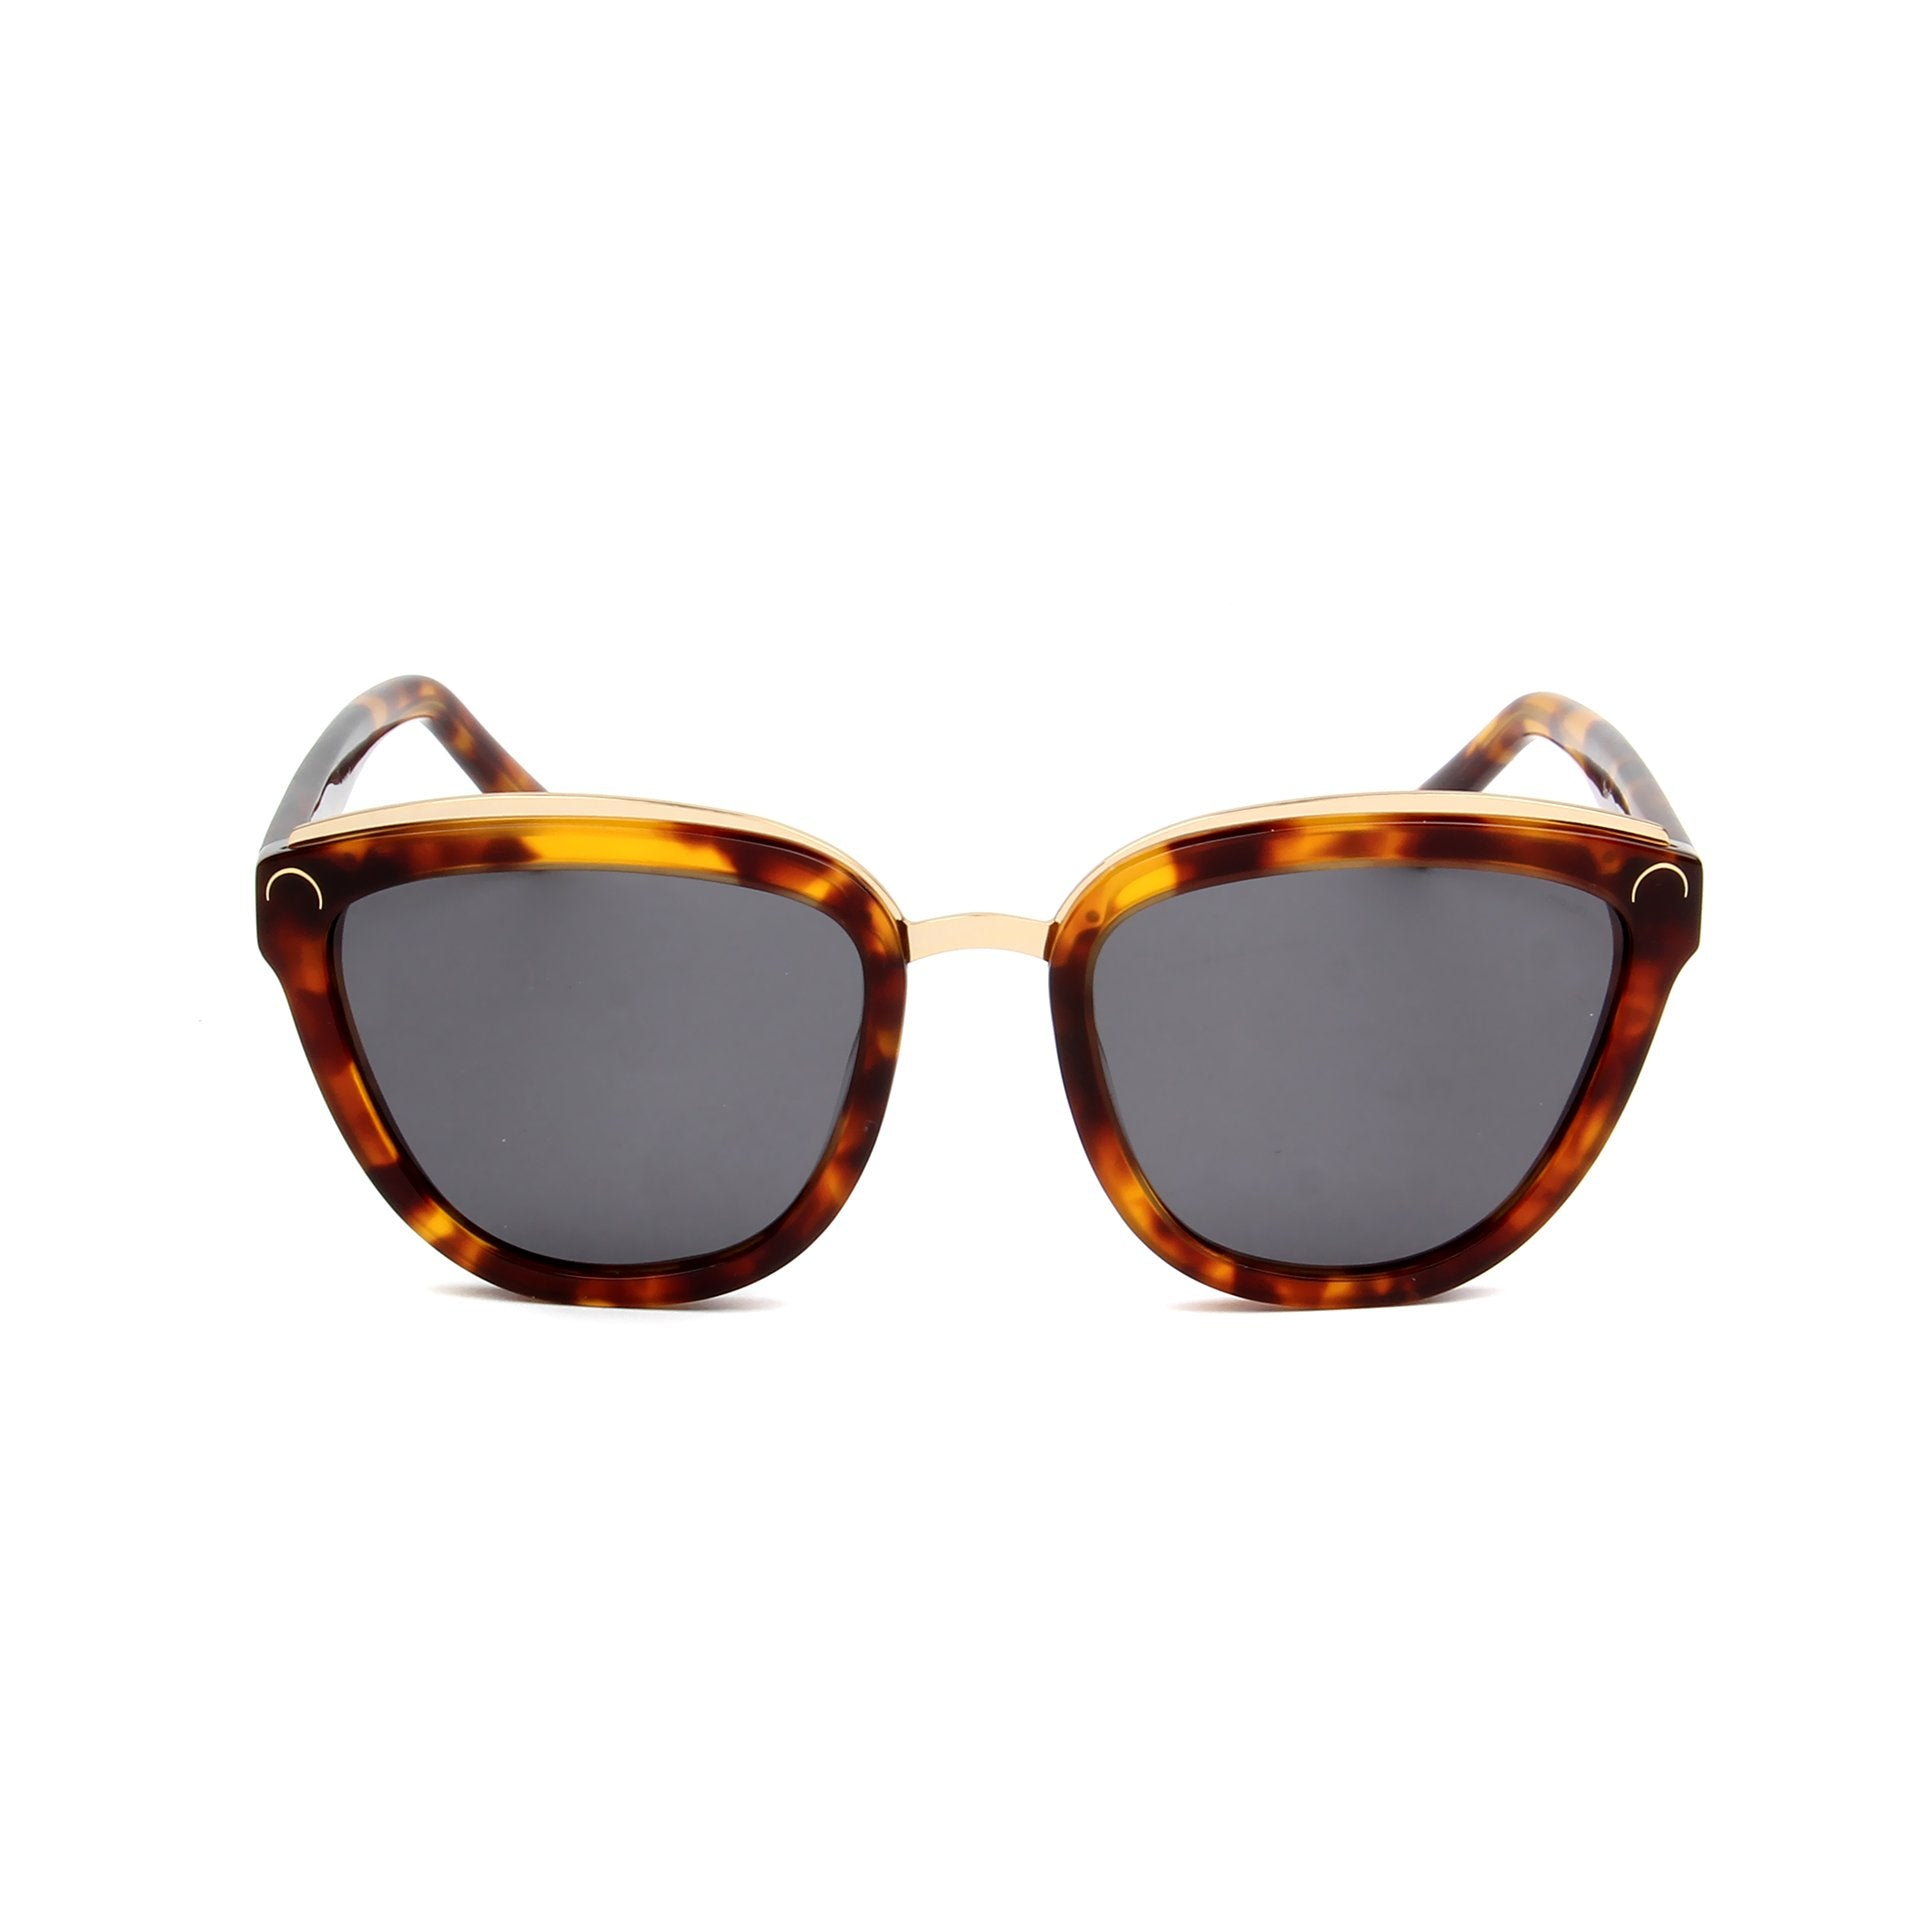 Amelie Tortoise - Front View - Grey lens - Mawu Sunglasses